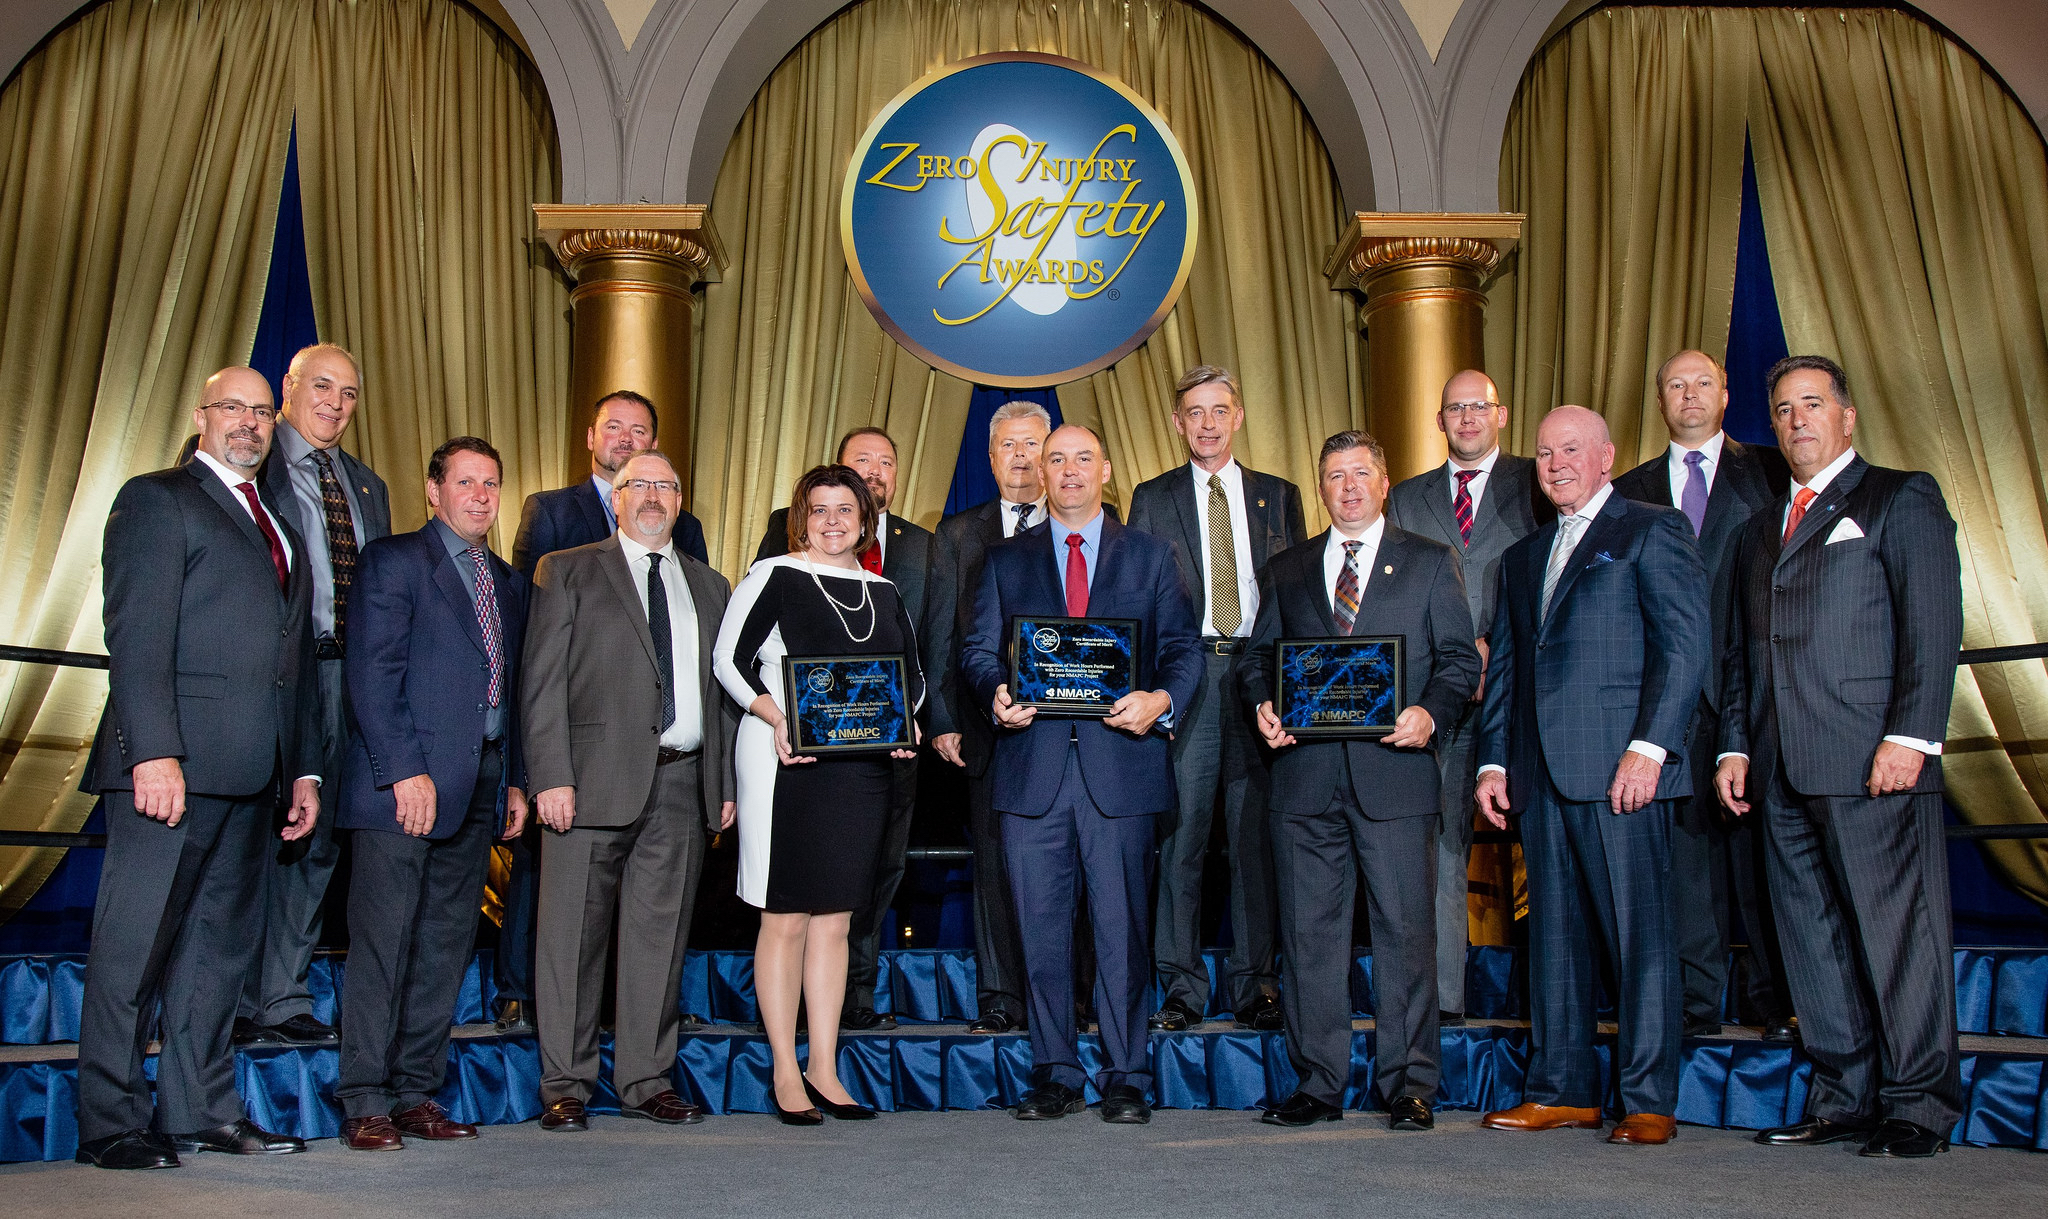 Primary Energy Recycling Awarded Highest Honor At Zero Injury Safety